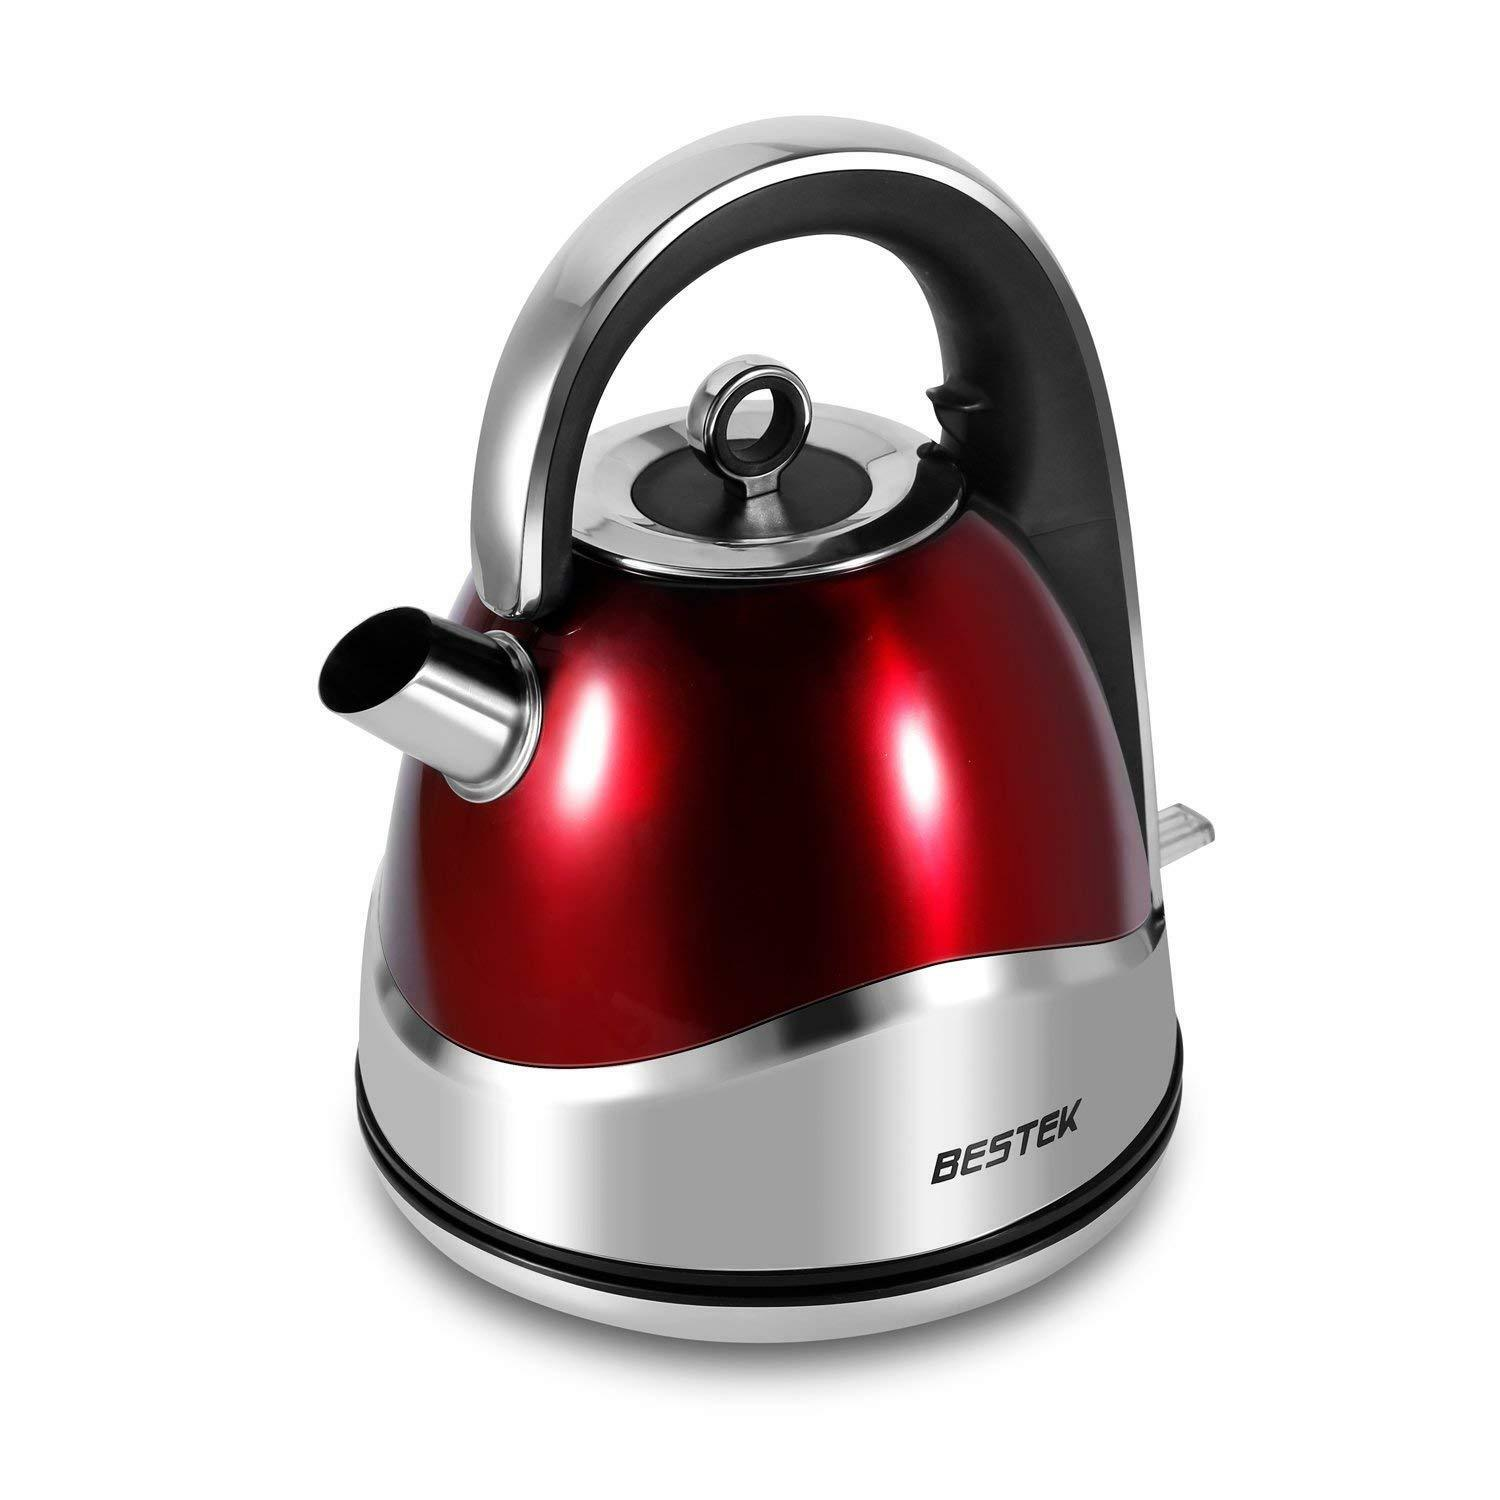 Bestek Retro Electric Kettle Red Stainless Steel Jug Cordless Watering Can 1.5L